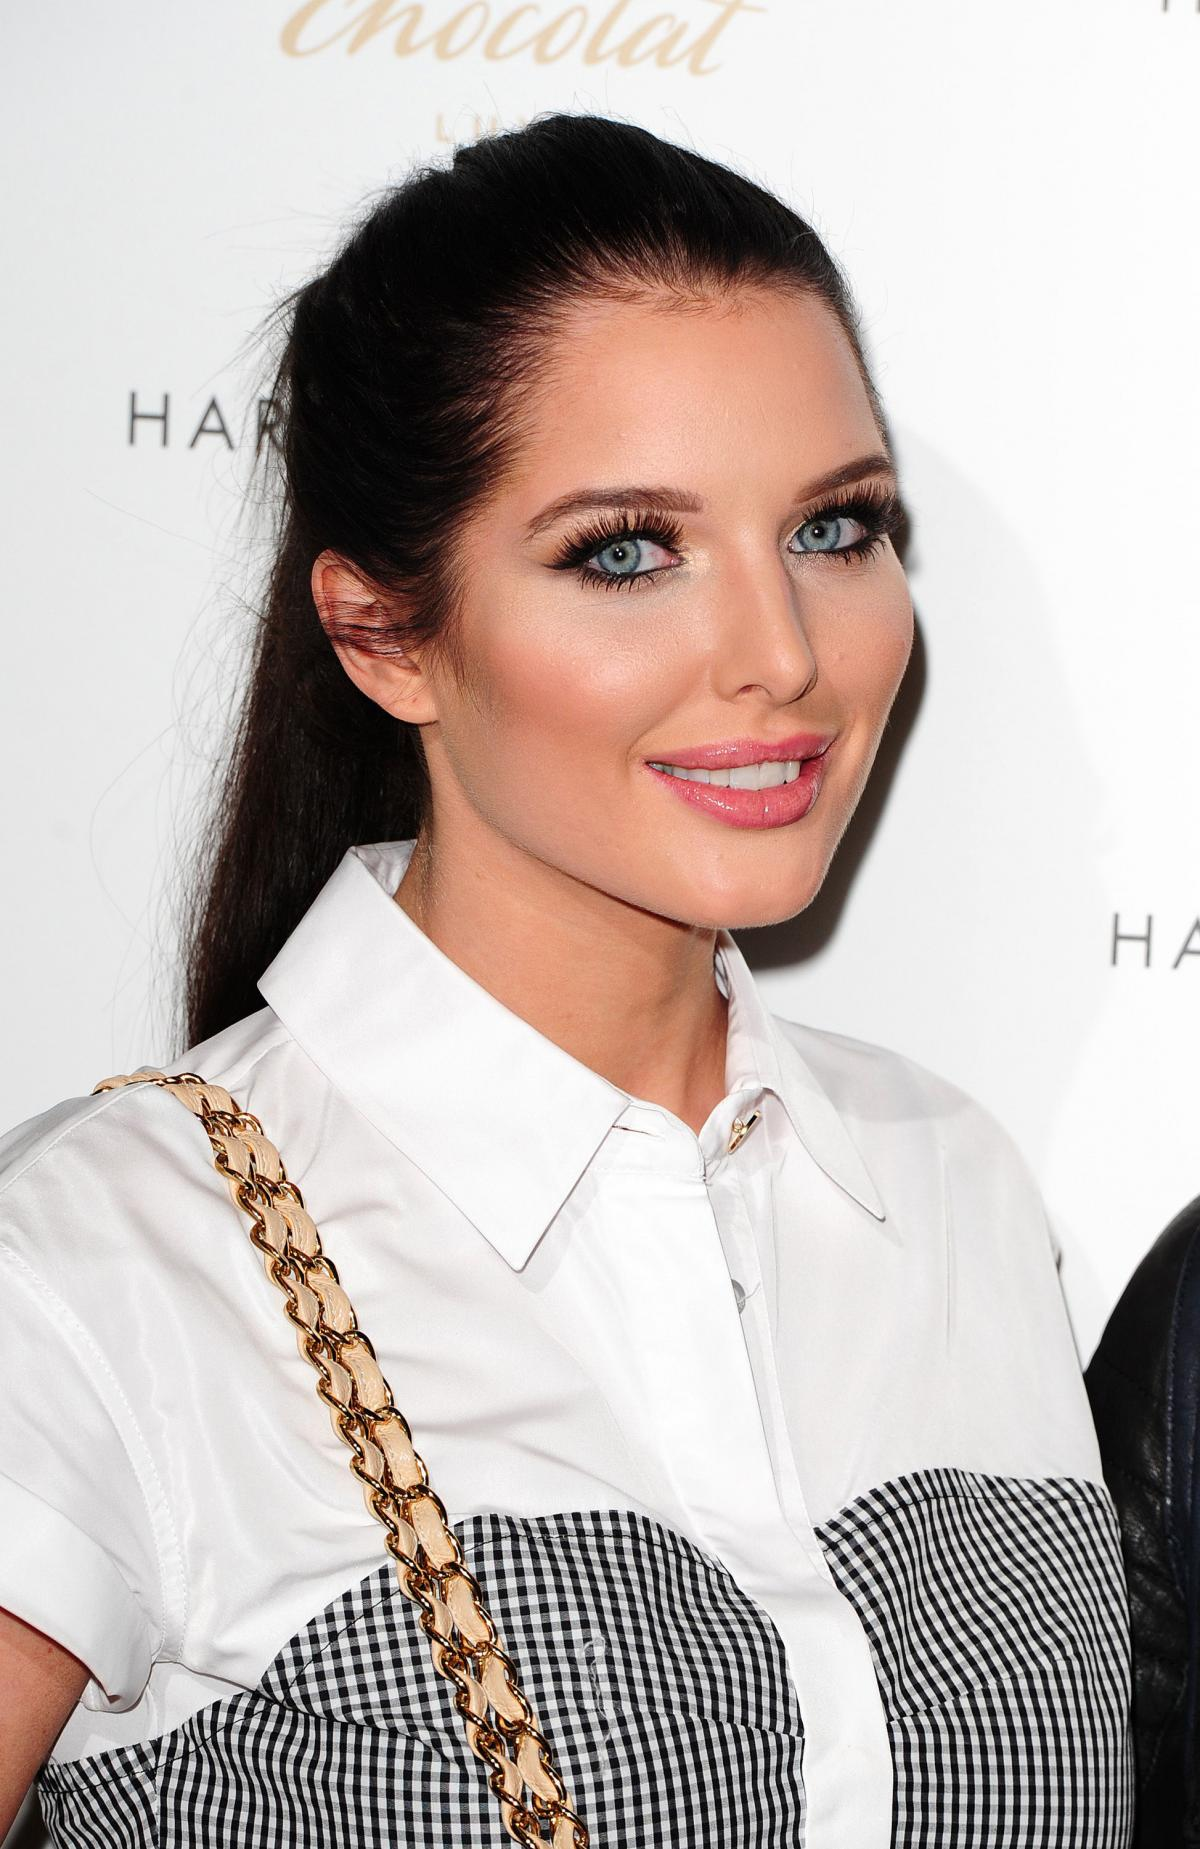 Helen Flanagan Ready For Rosies Roving Return To Corrie